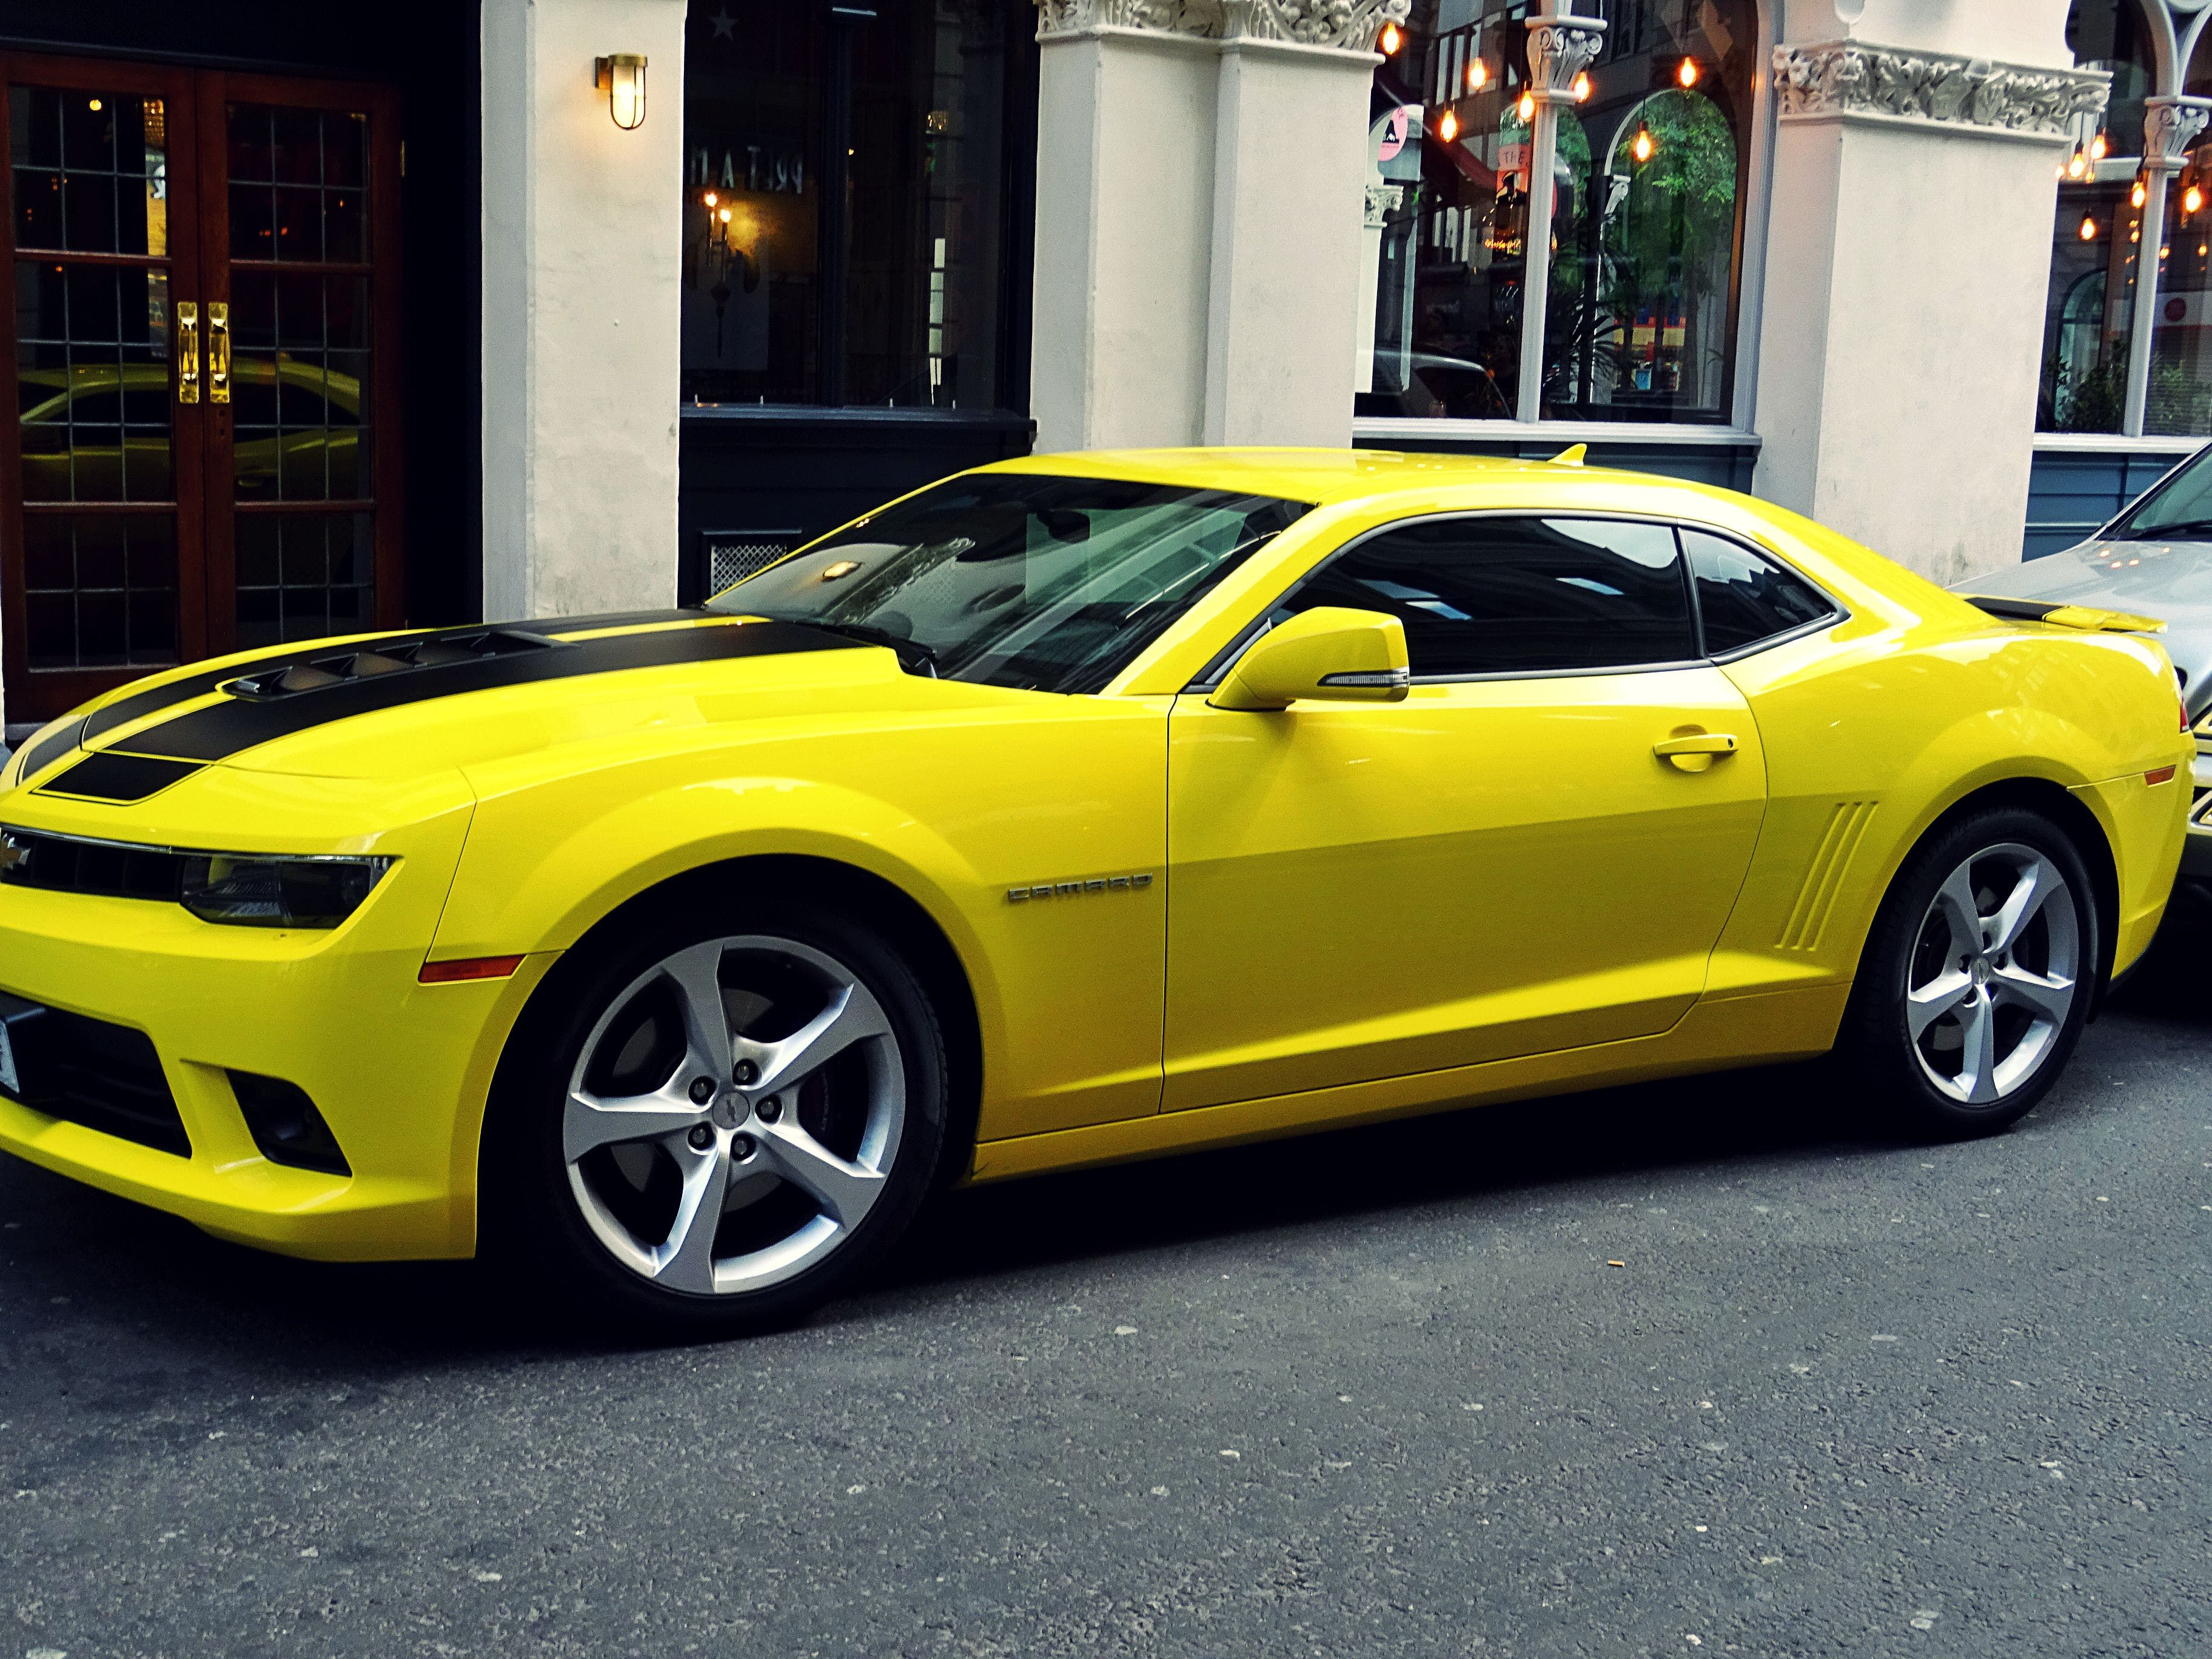 Yellow Chevroelt Camaro Parked Outside of Building